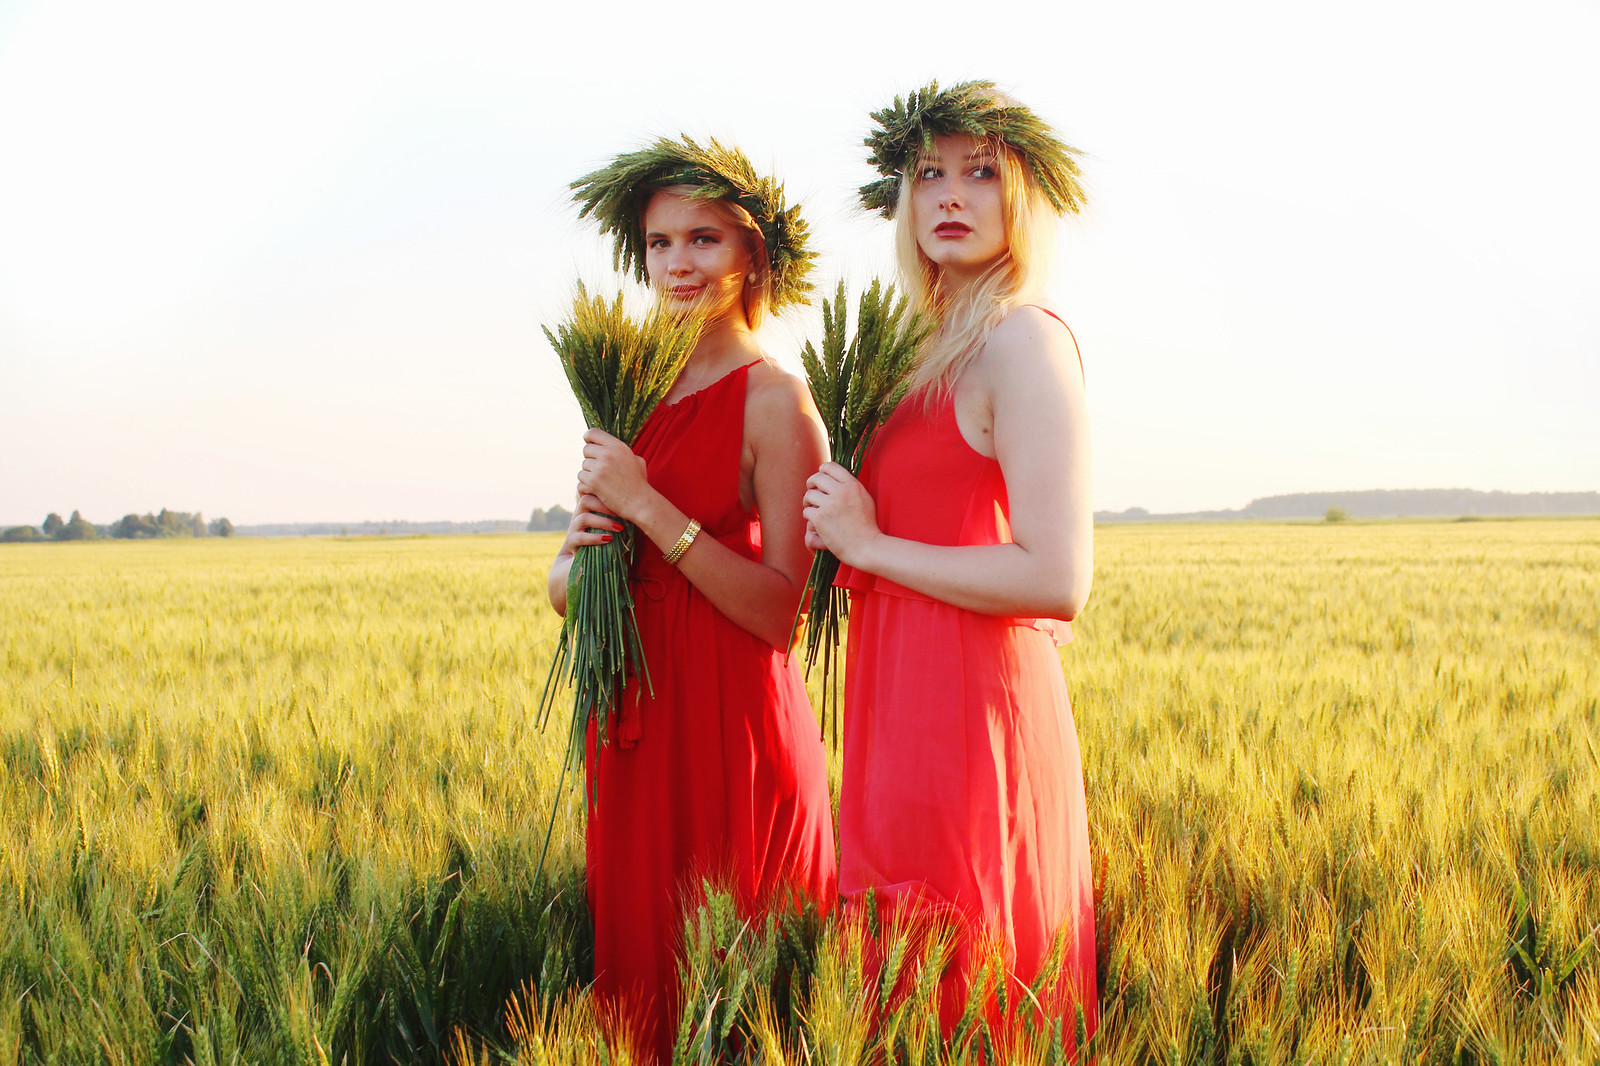 Latvian girls with flower wreaths